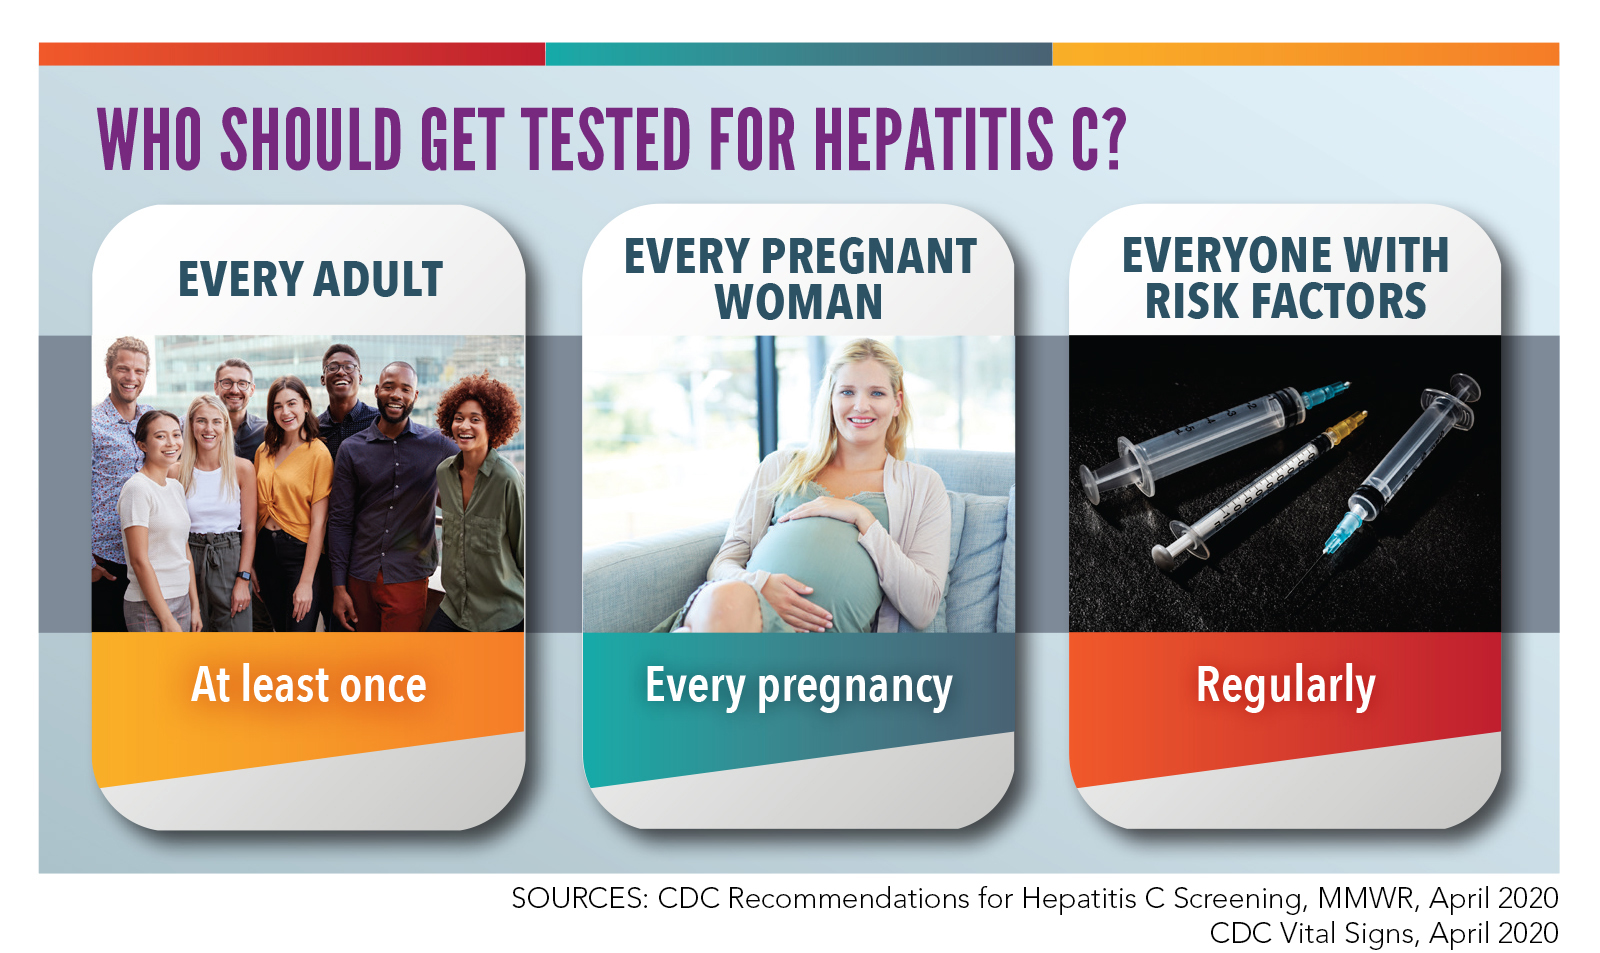 Who should get tested for hepatitis C? Every adult at least once. Every pregnant woman with every pregnancy. Everyone with risk factors regularly.